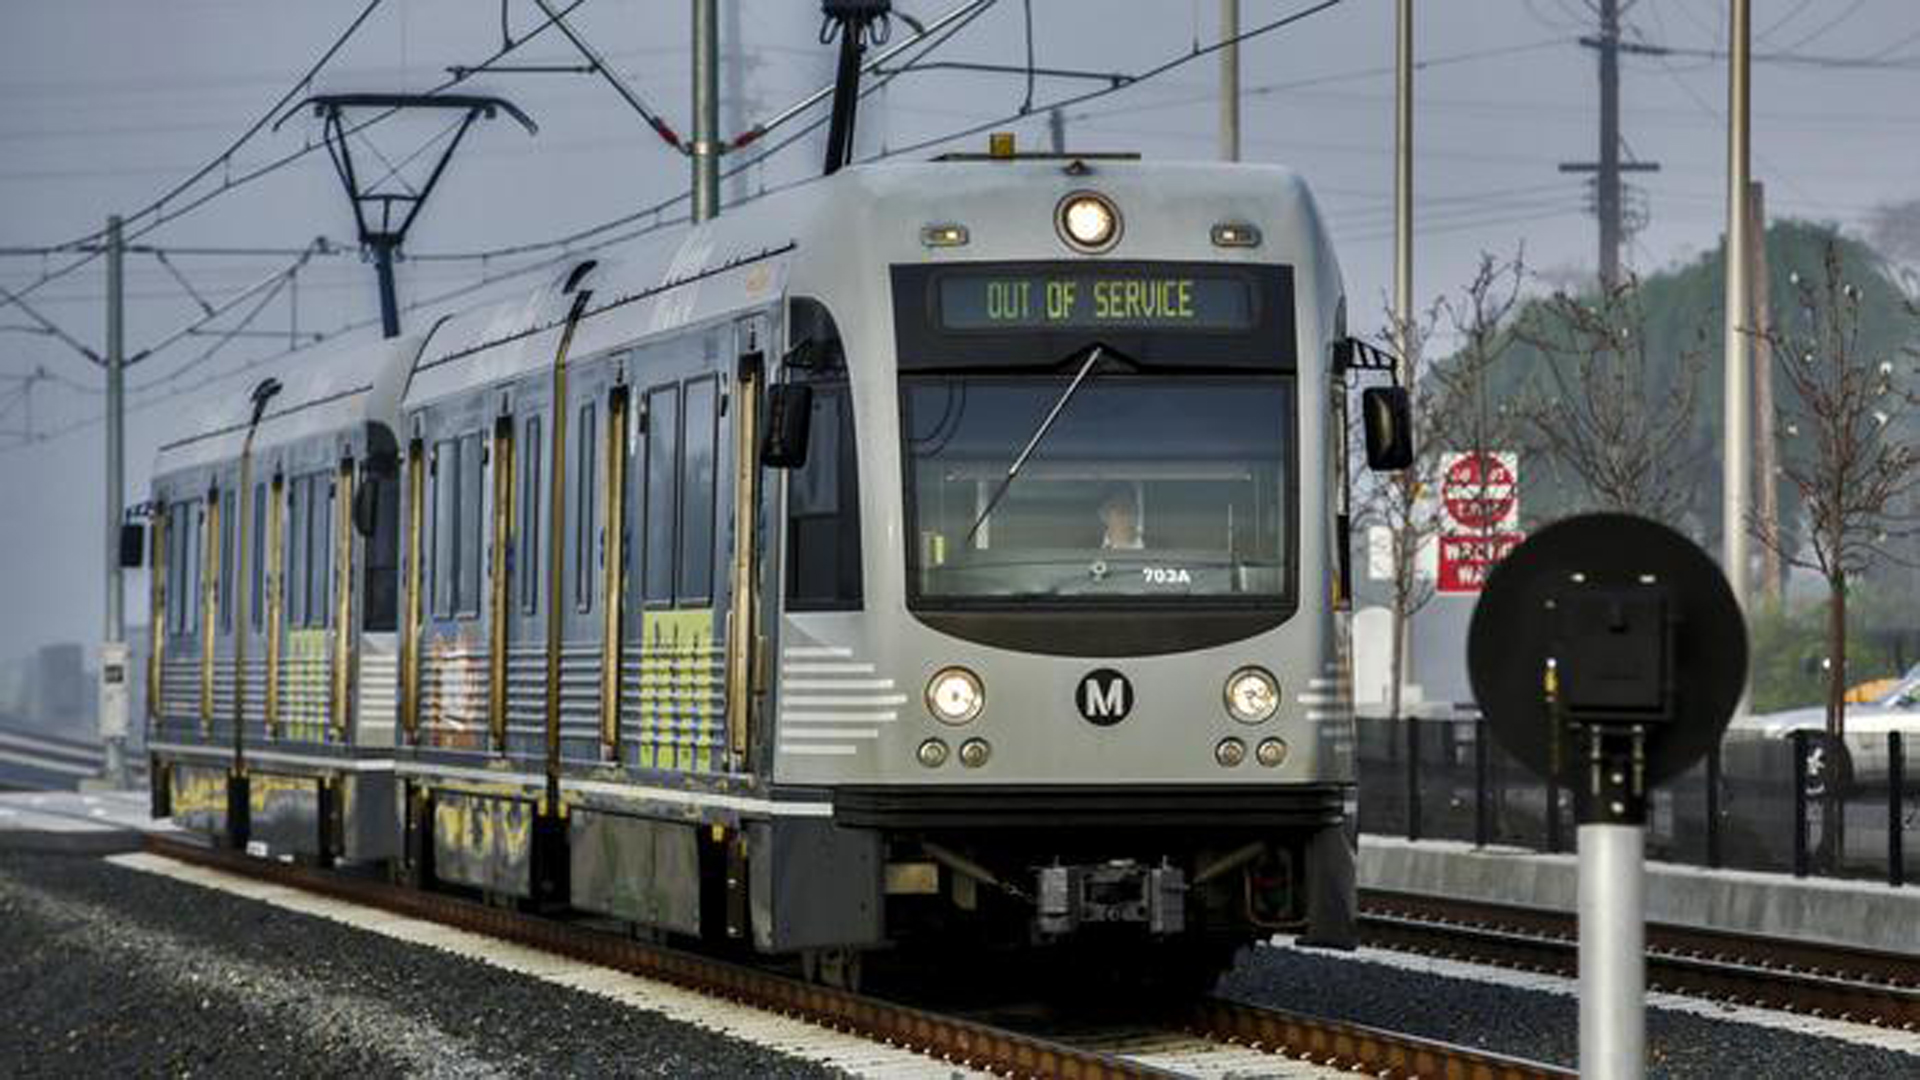 A Metro Gold Line train is seen in a file photo. (Credit: Irfan Khan / Los Angeles Times)